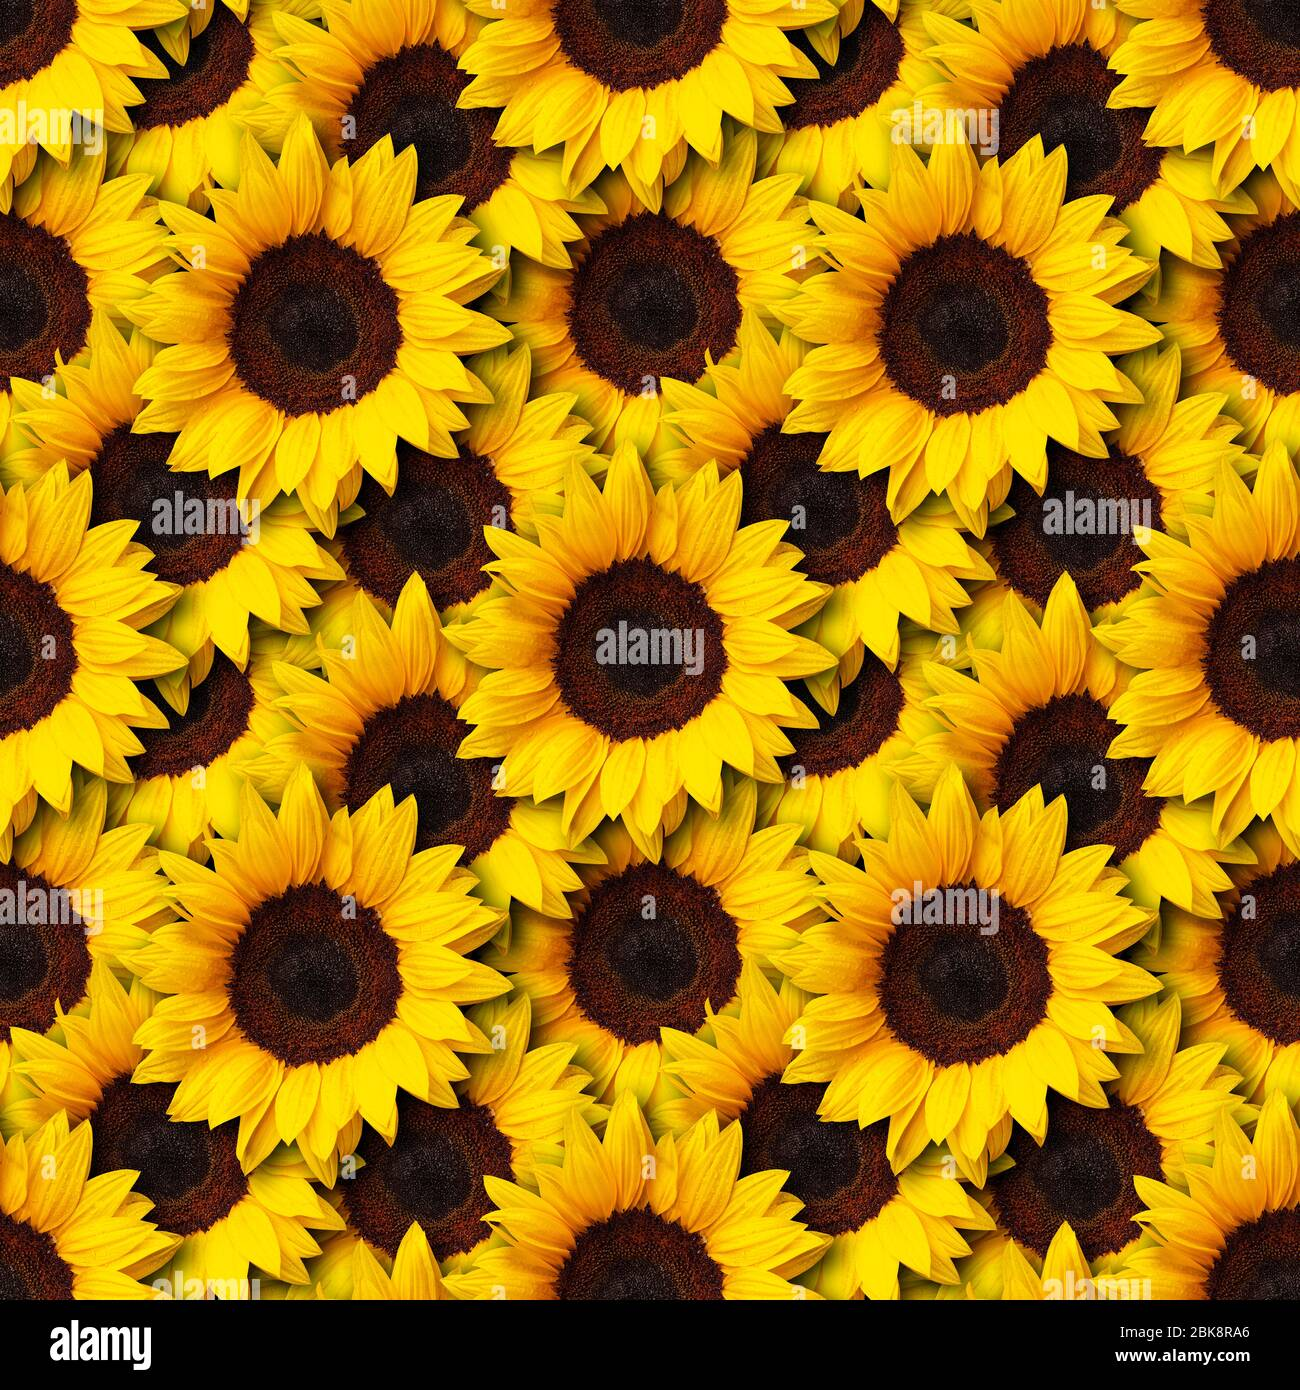 sunflowers flowers seamless pattern design background can be tiled 2BK8RA6